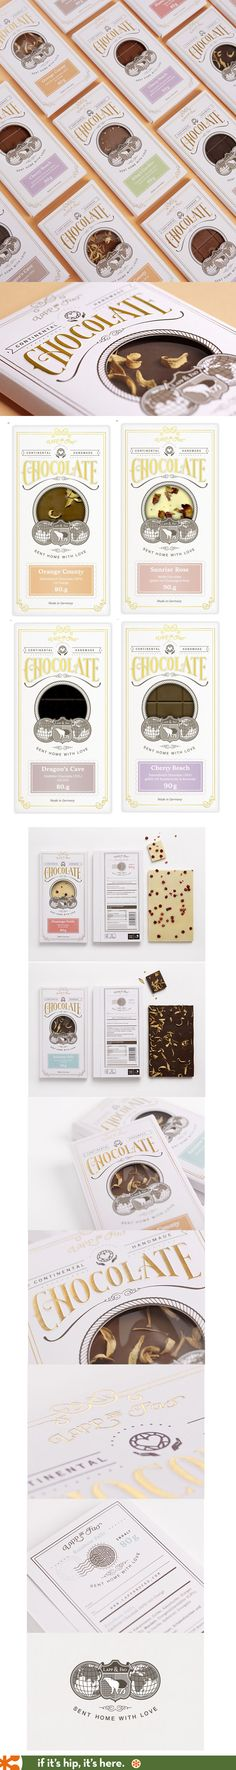 Lapp and Fao chocolate bars package design by Studio Chapeaux